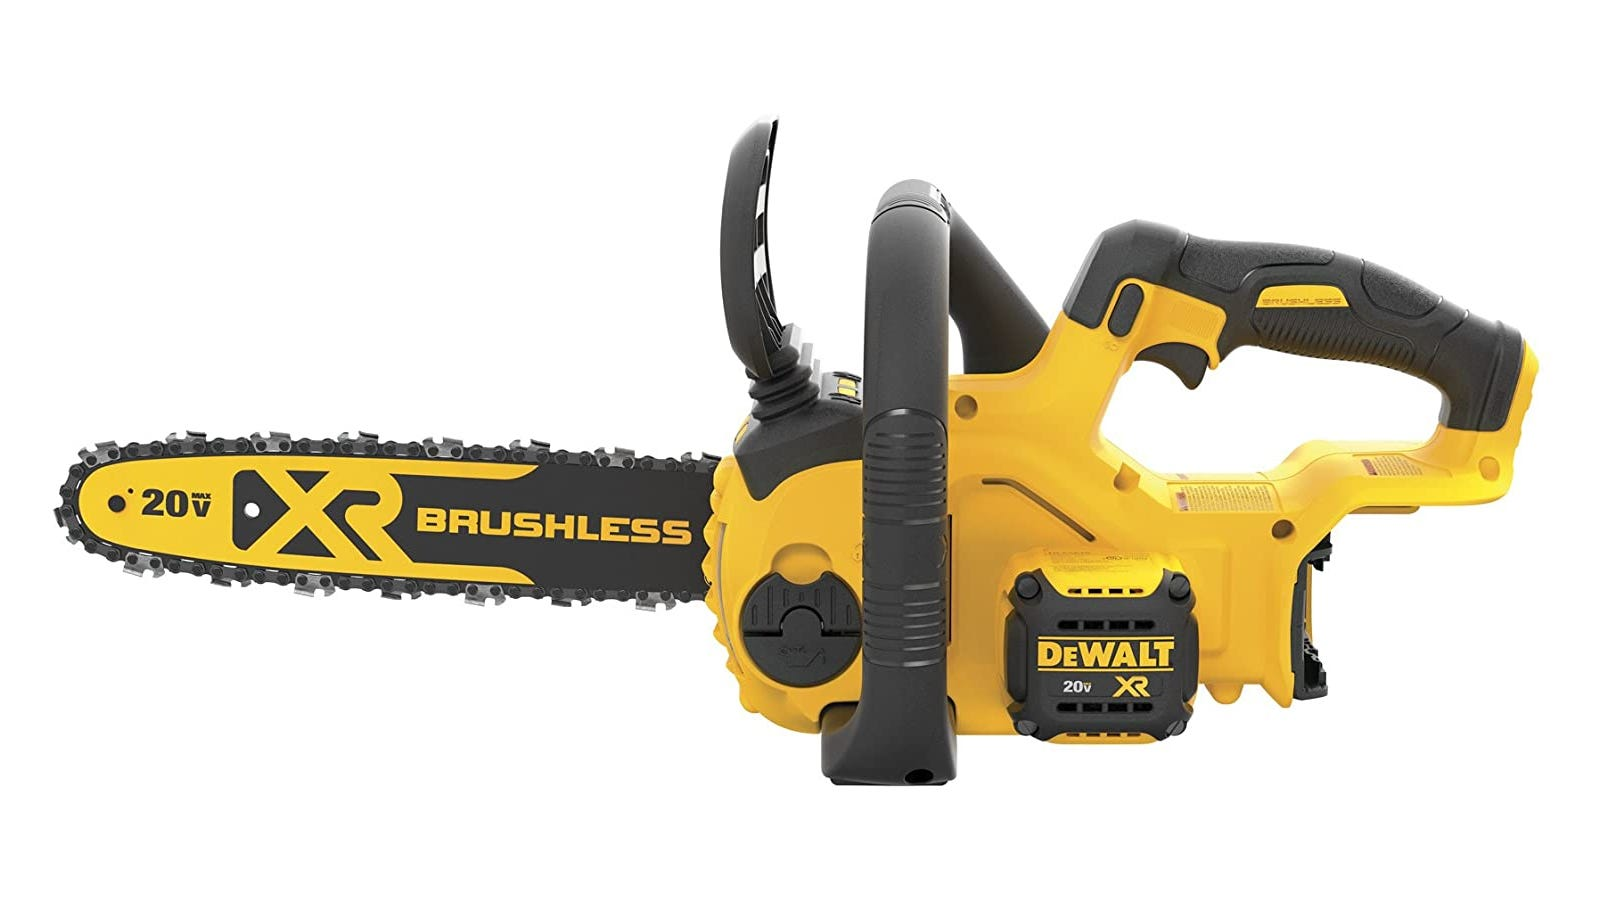 Yellow and black 20v battery-powered chainsaw with brushless motor and lightweight design